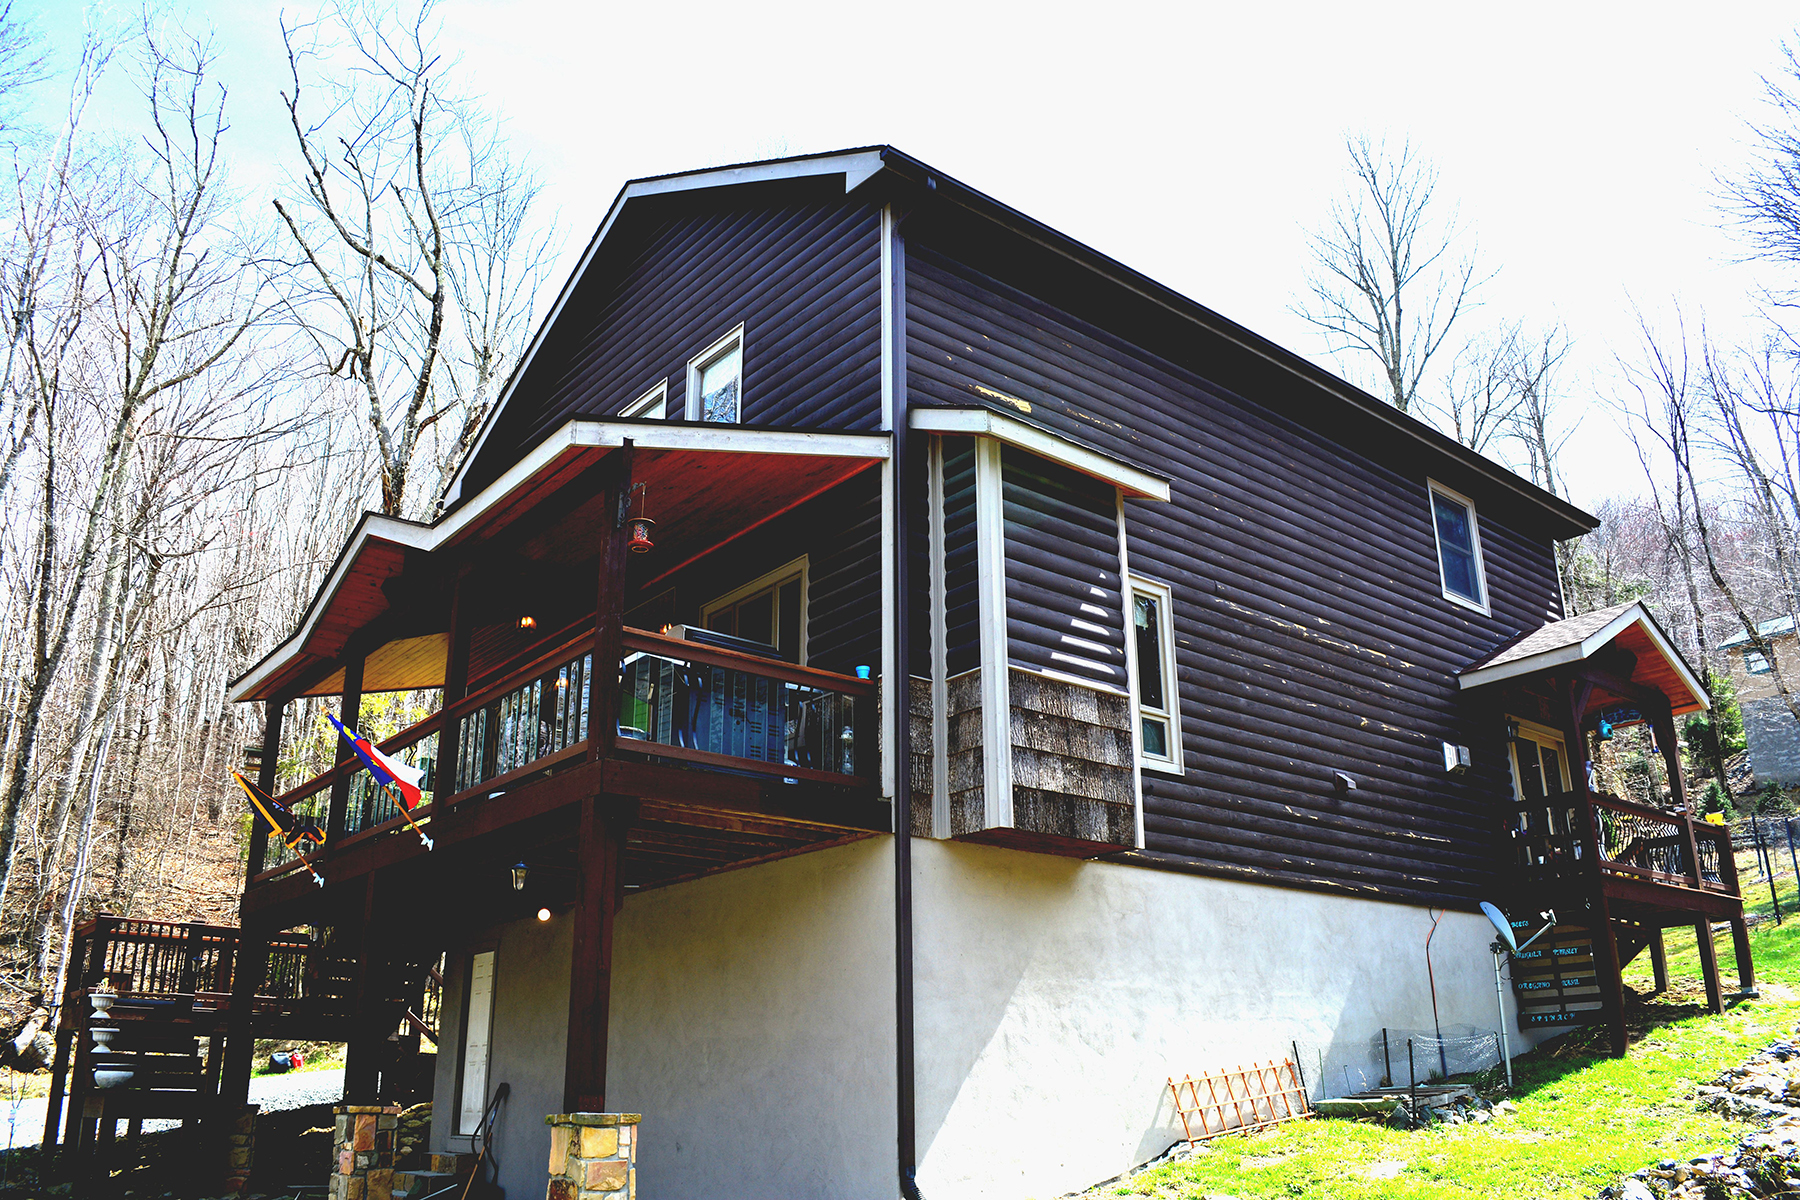 Single Family Home for Sale at BEECH MOUNTAIN 124 Greenbriar Road Beech Mountain, North Carolina, 28604 United States